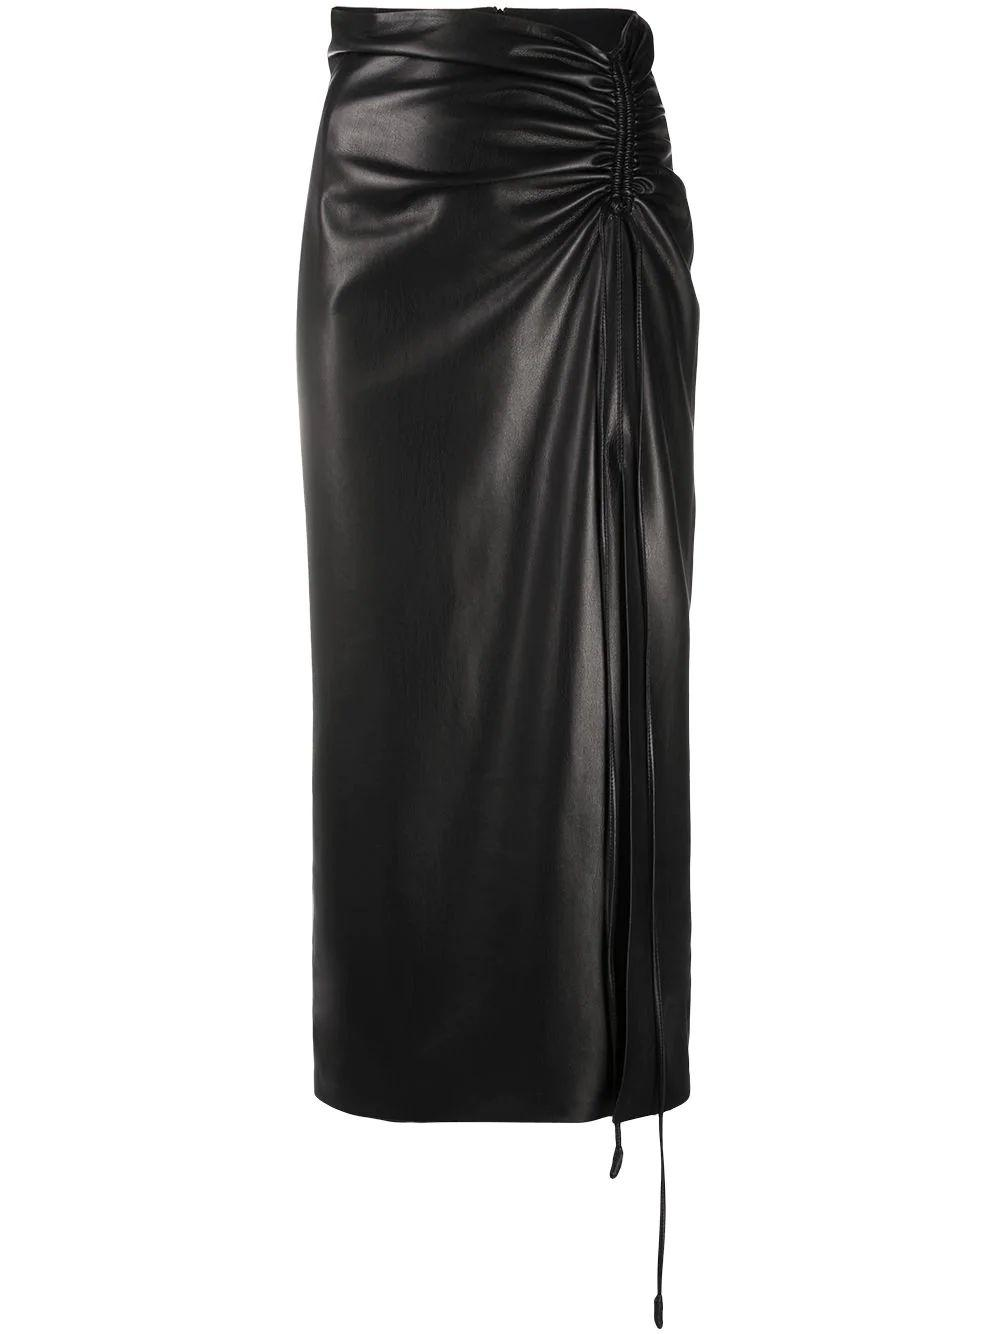 Malorie Faux Leather Midi Skirt